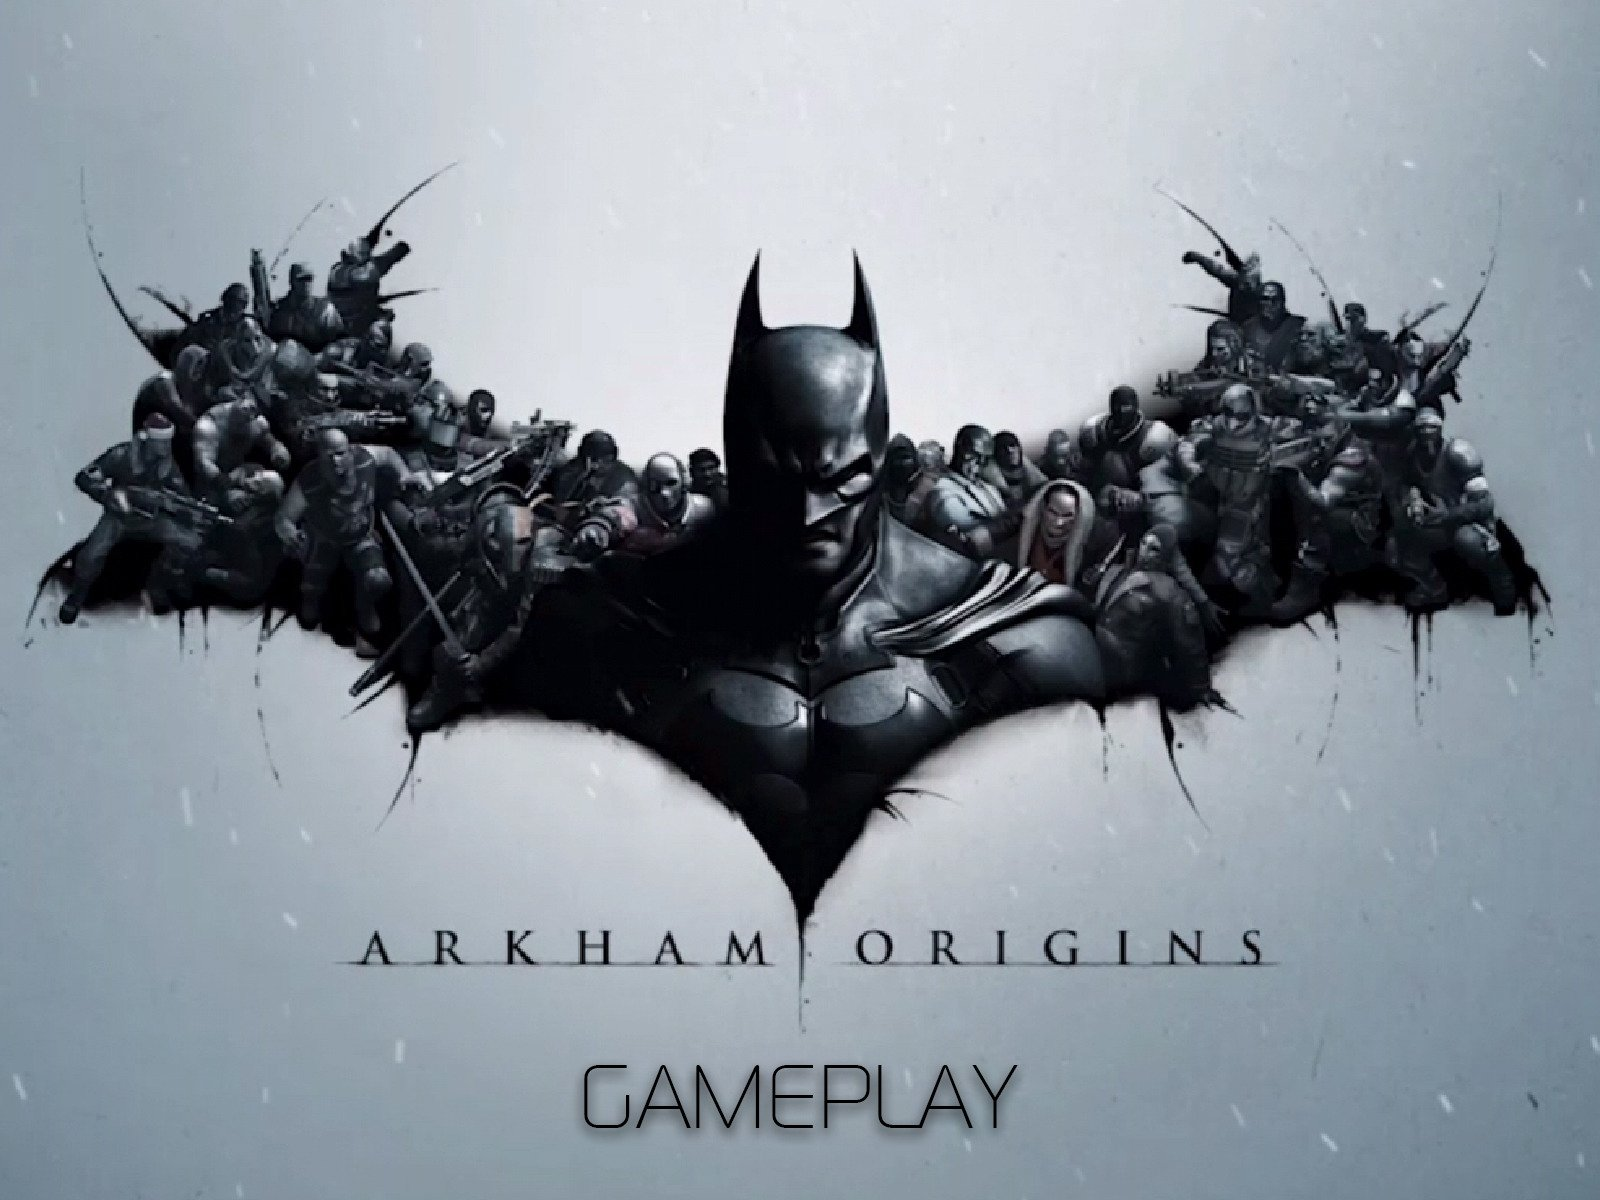 Clip: Arkham Origins Gameplay - Season 1